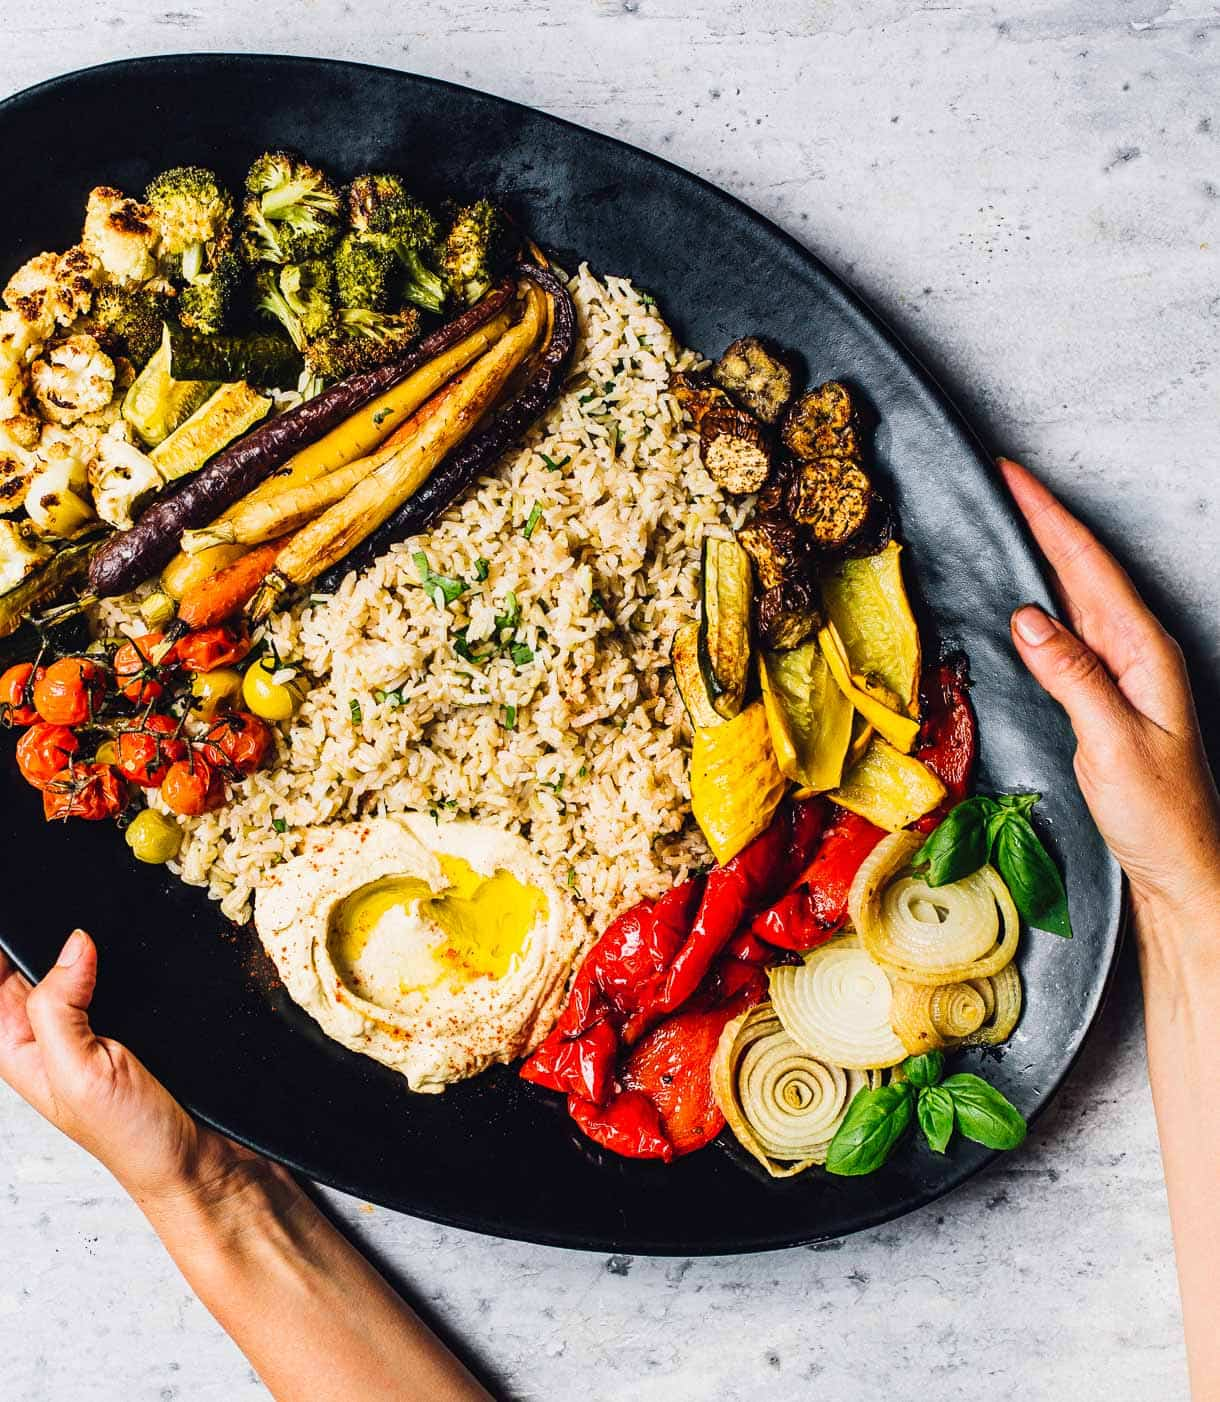 Hummus Platter with Roasted Vegetables and Rice